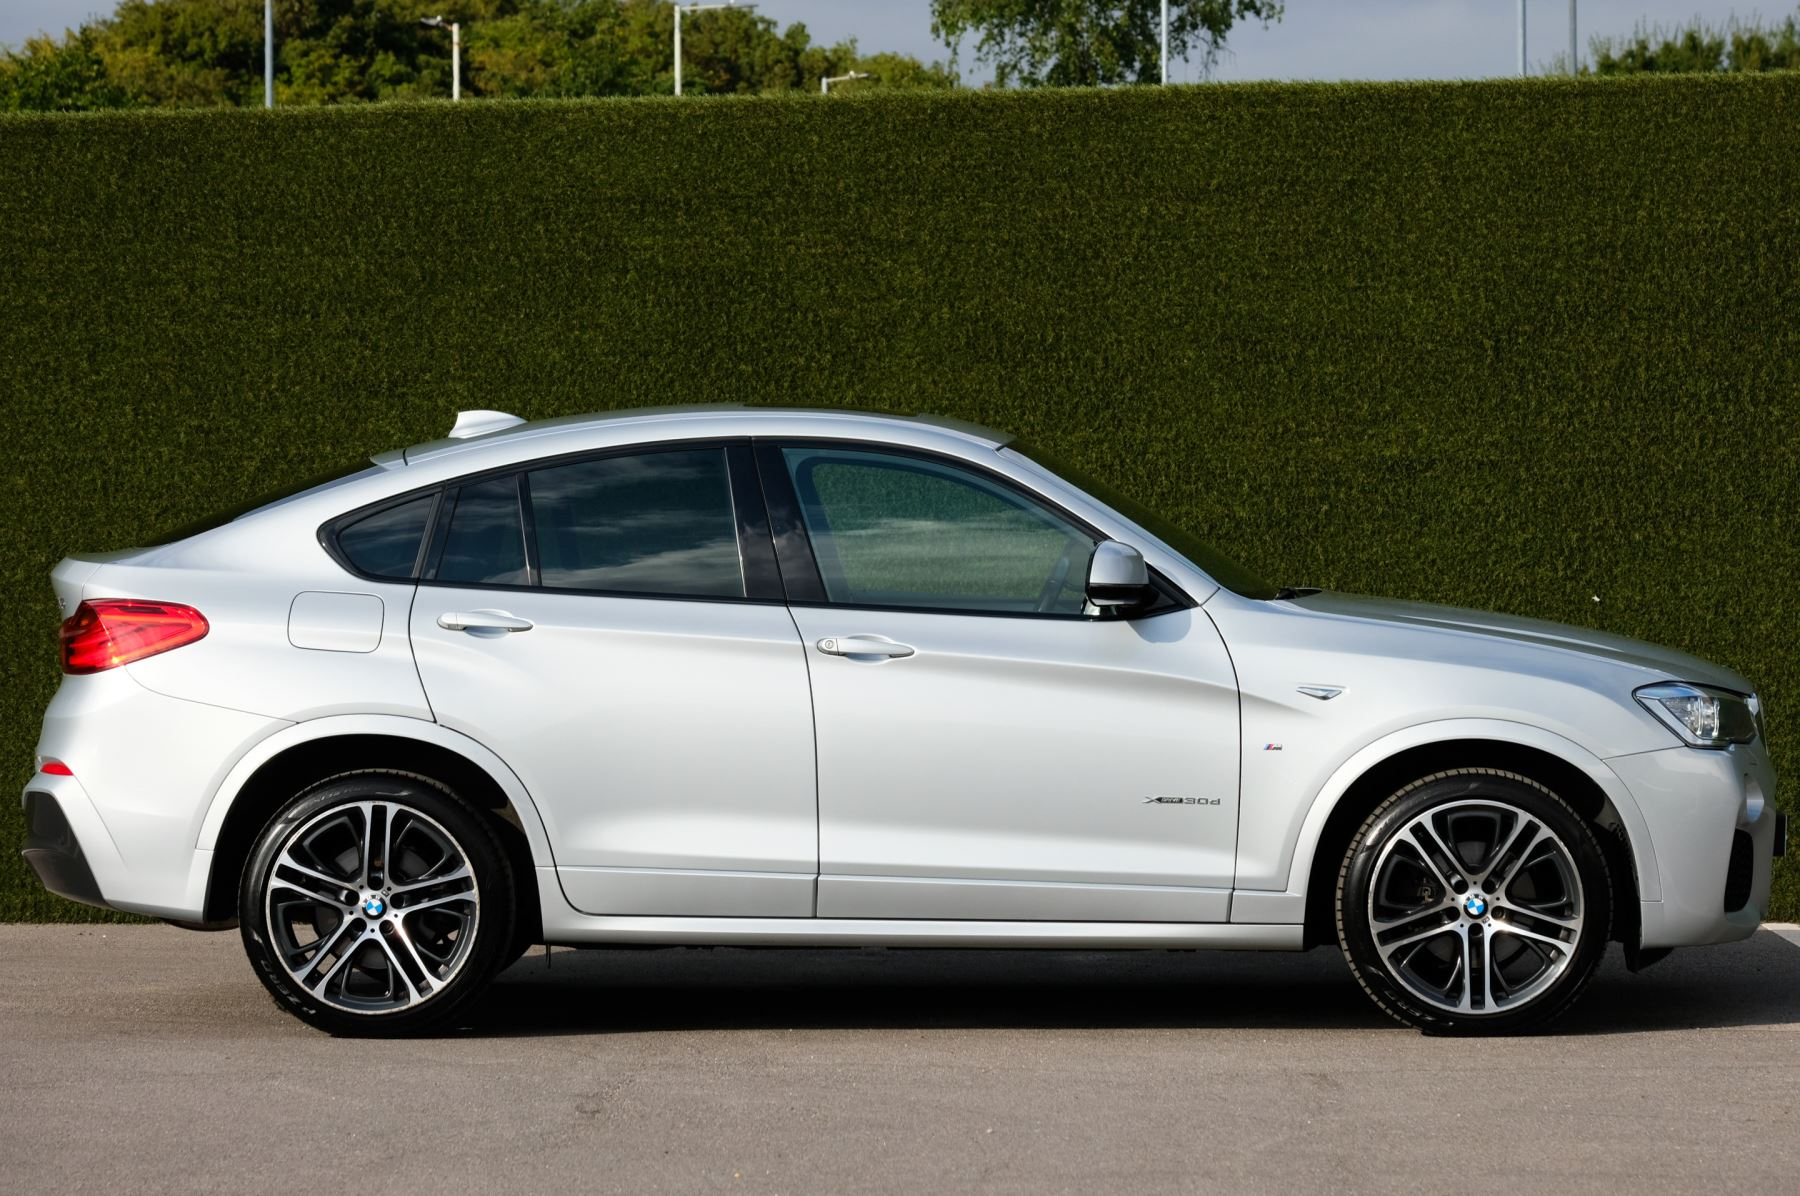 BMW X4 xDrive30d M Sport 5dr Step - M Sport Plus Package - Interior Comfort Package - Elec Glass Sunroof -  image 3